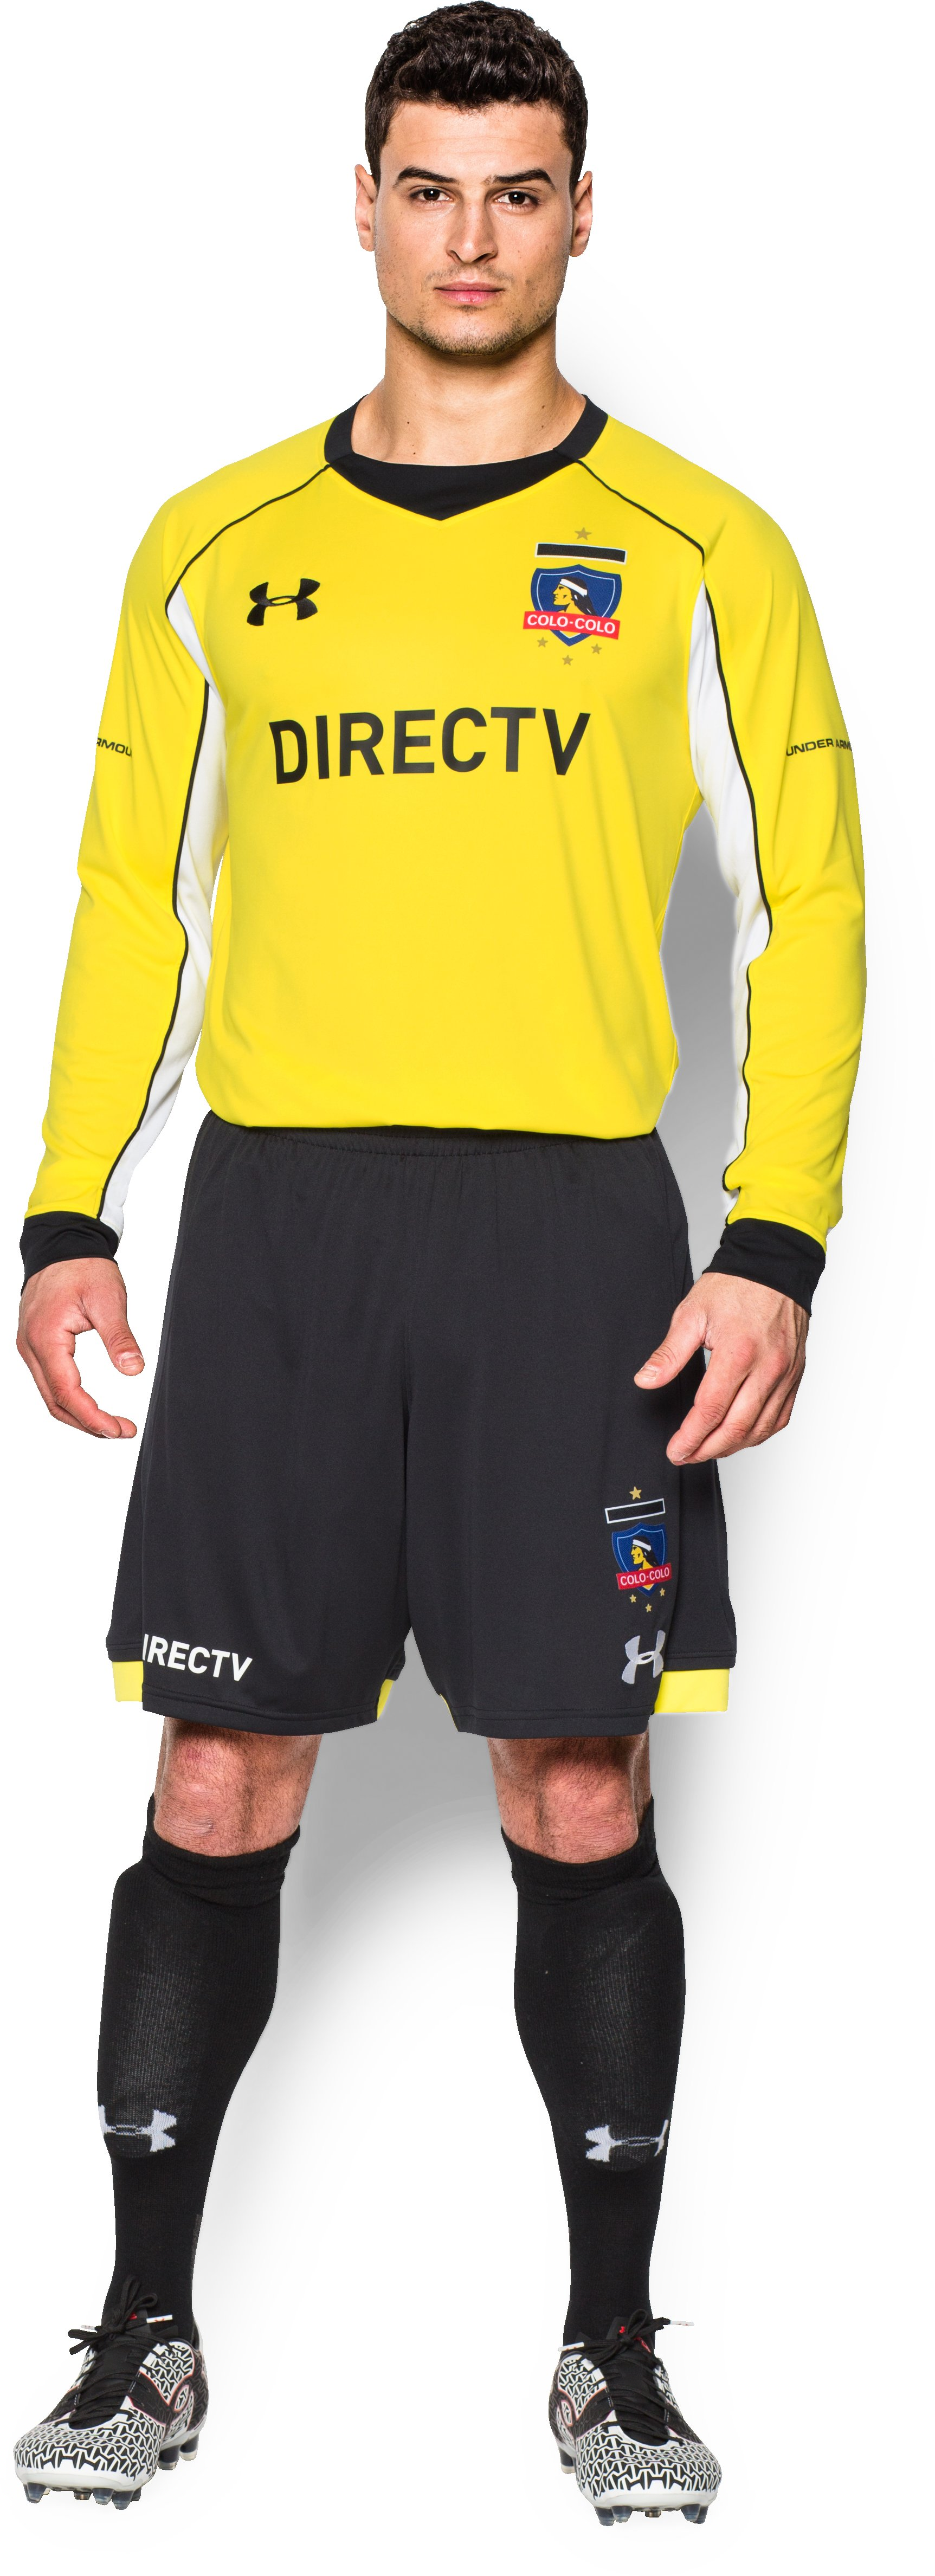 Men's Colo-Colo Goalkeeper Replica Jersey, Sunbleached